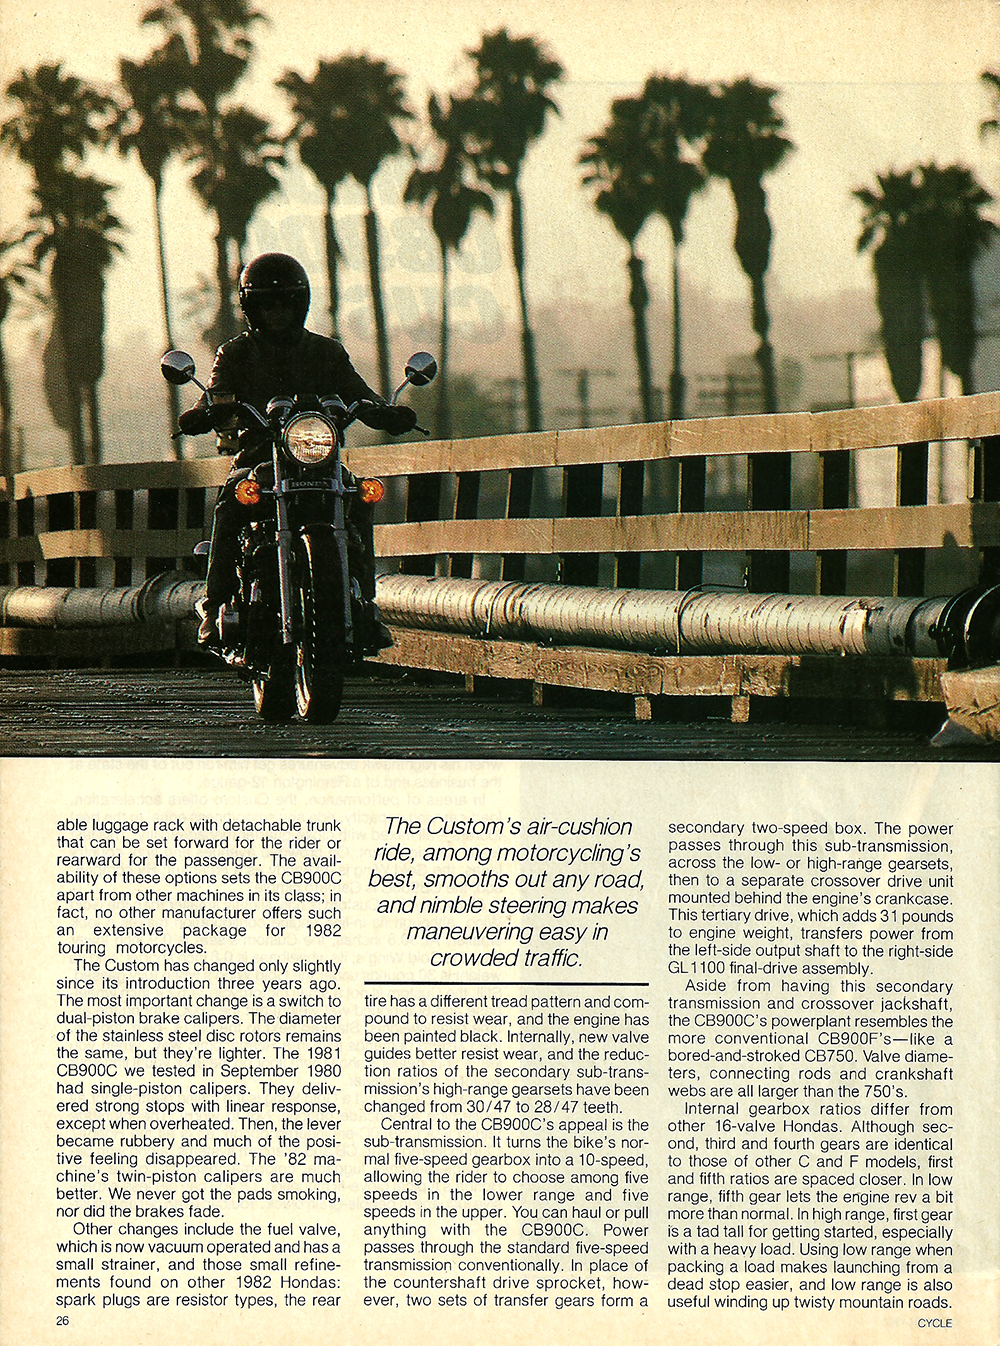 1982 Honda CB900C Custom road test 3.jpg